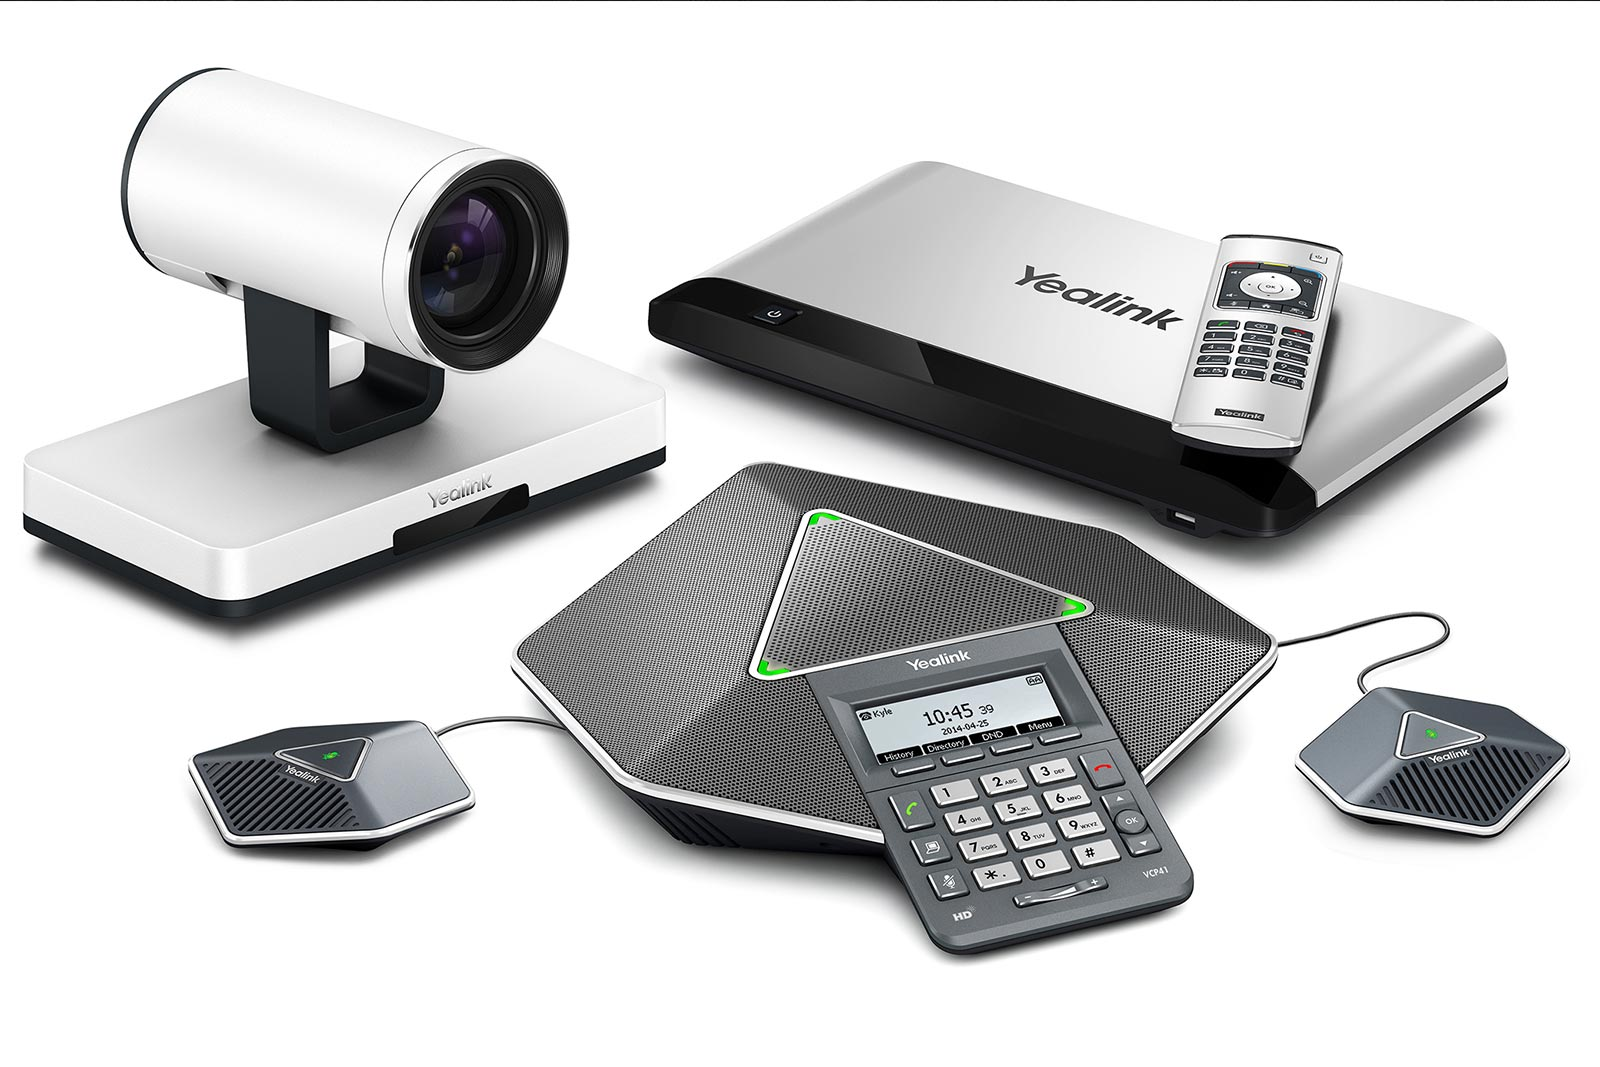 ADDCOM are now the authorised distributor for Yealink's